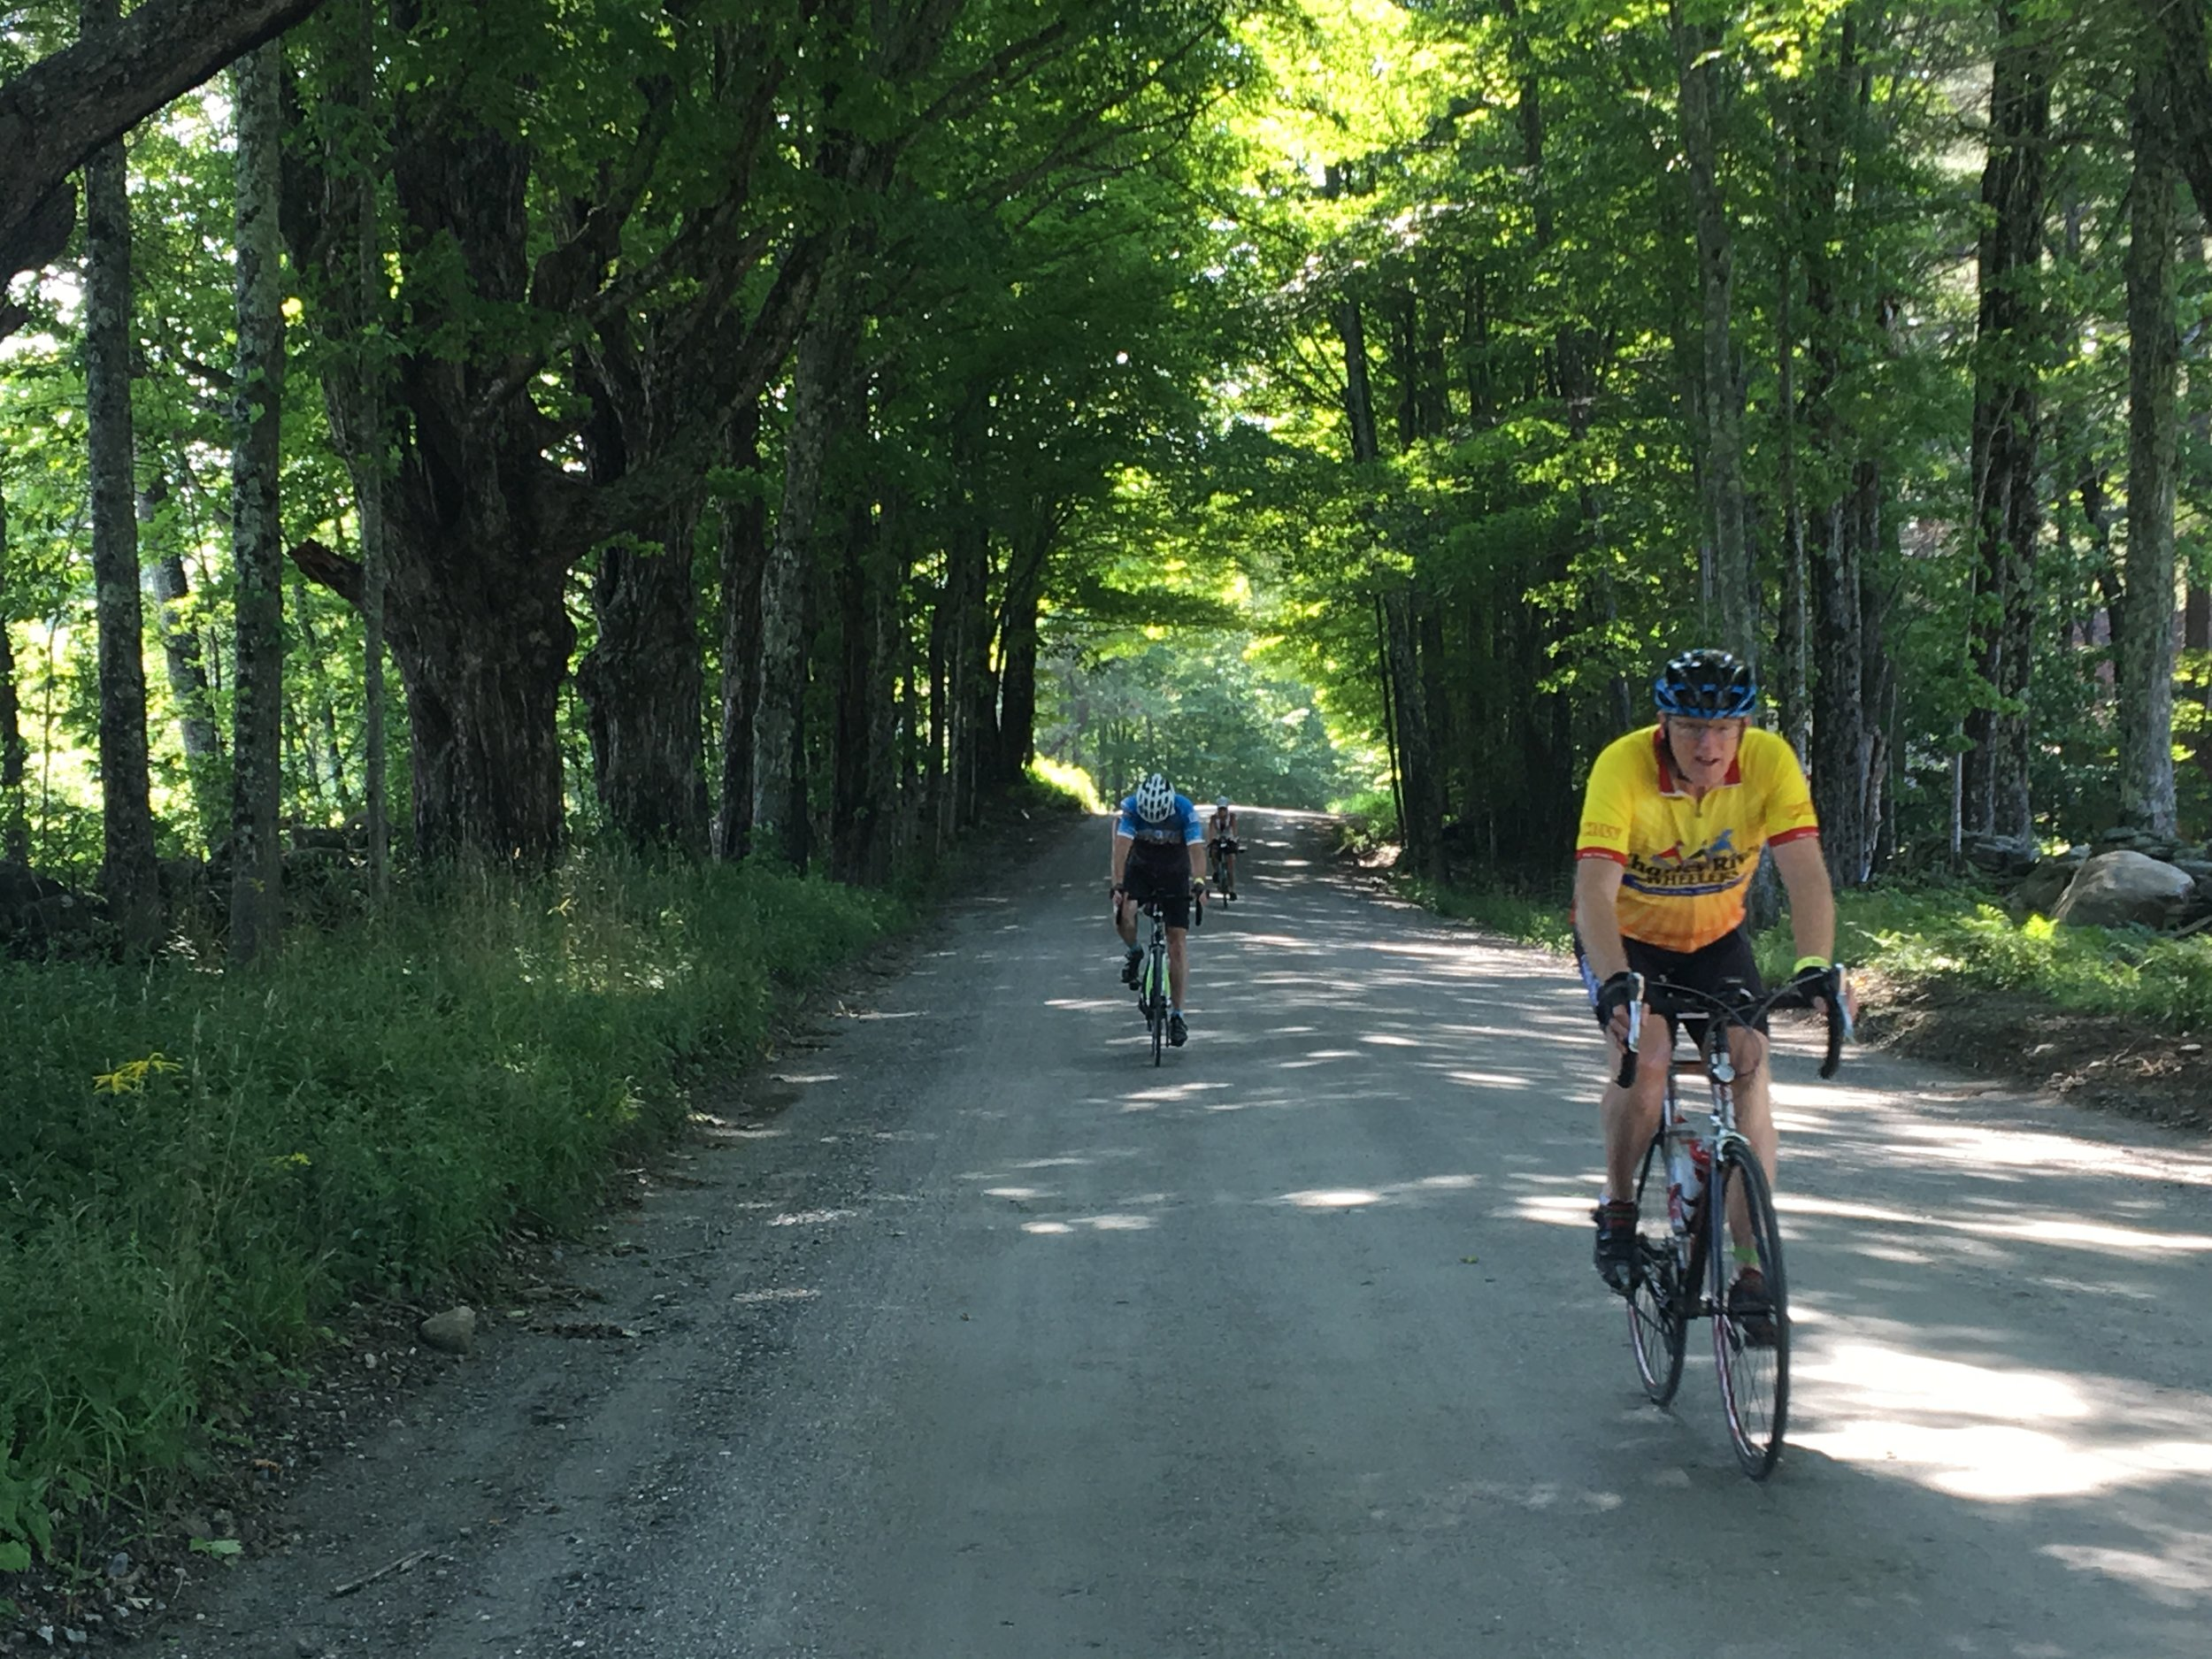 A little gravel road and shady maples